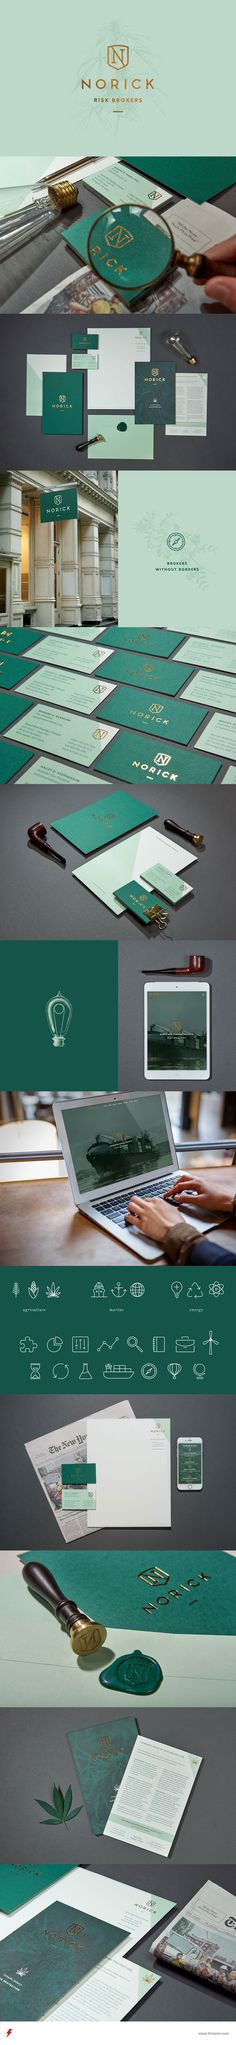 Norick Brand Identity on Behance